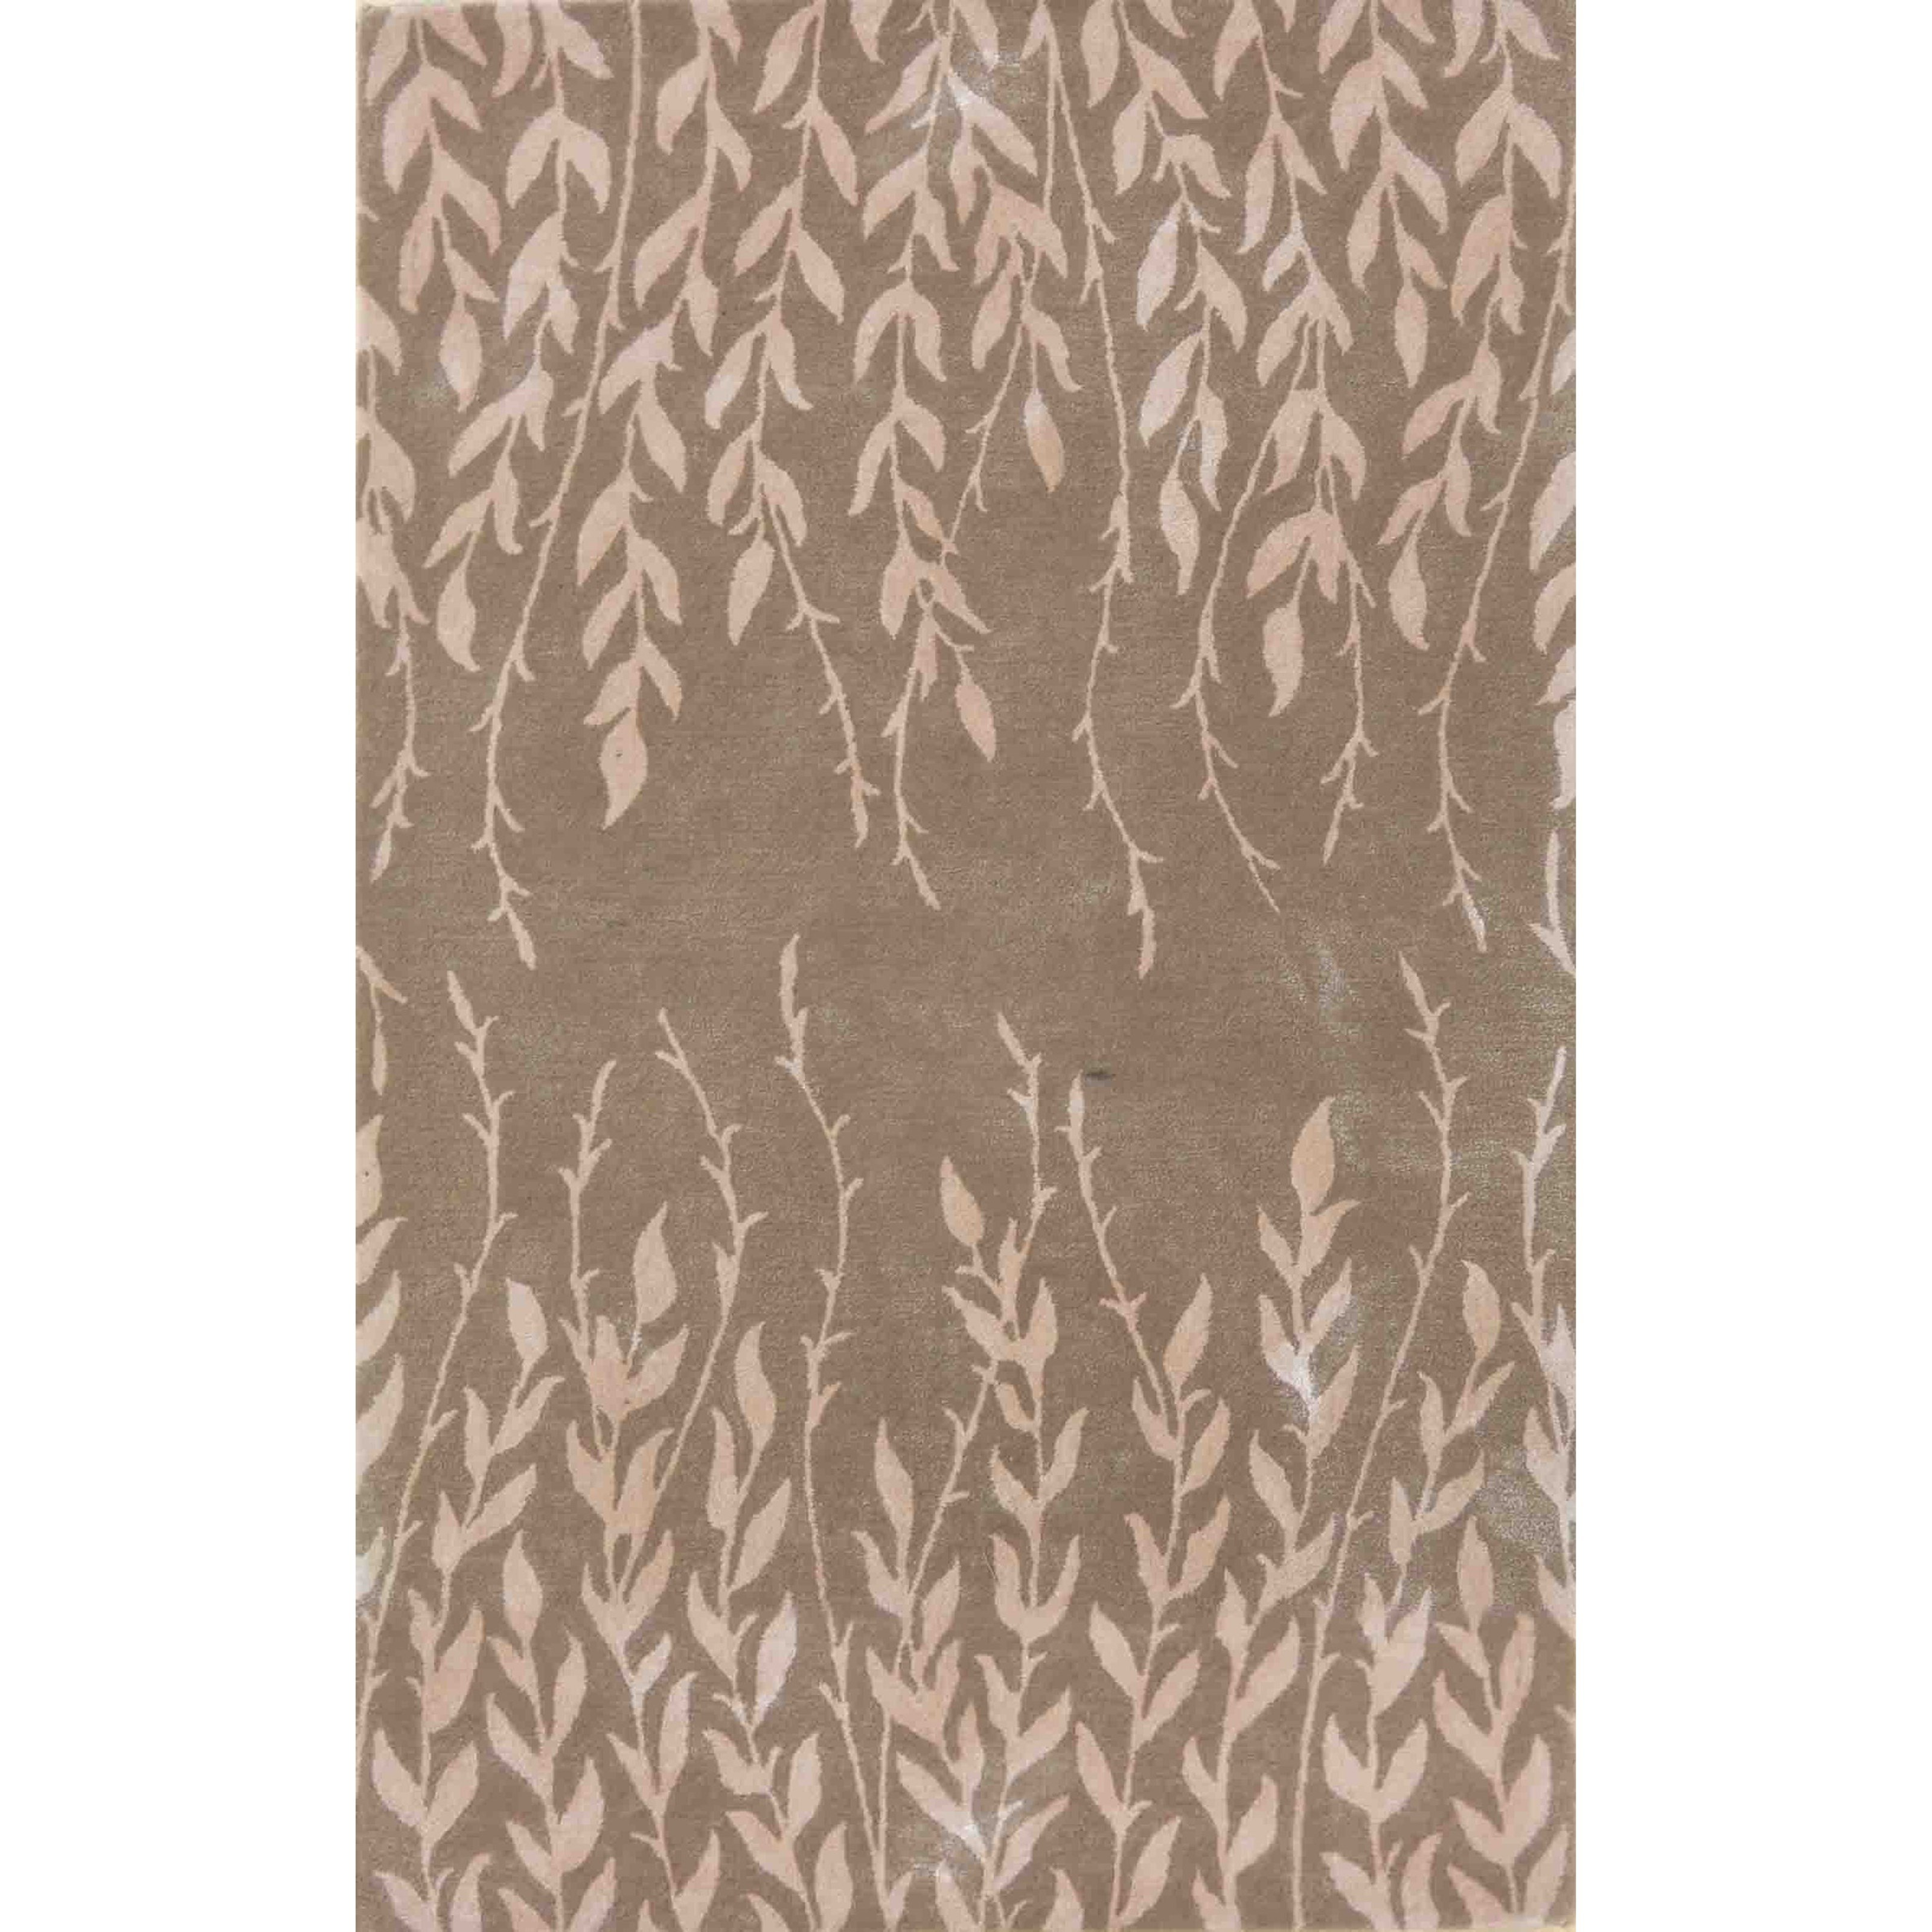 Bob Mackie Home 5' X 8' Beige Tranquility Area Rug by Kas at Darvin Furniture